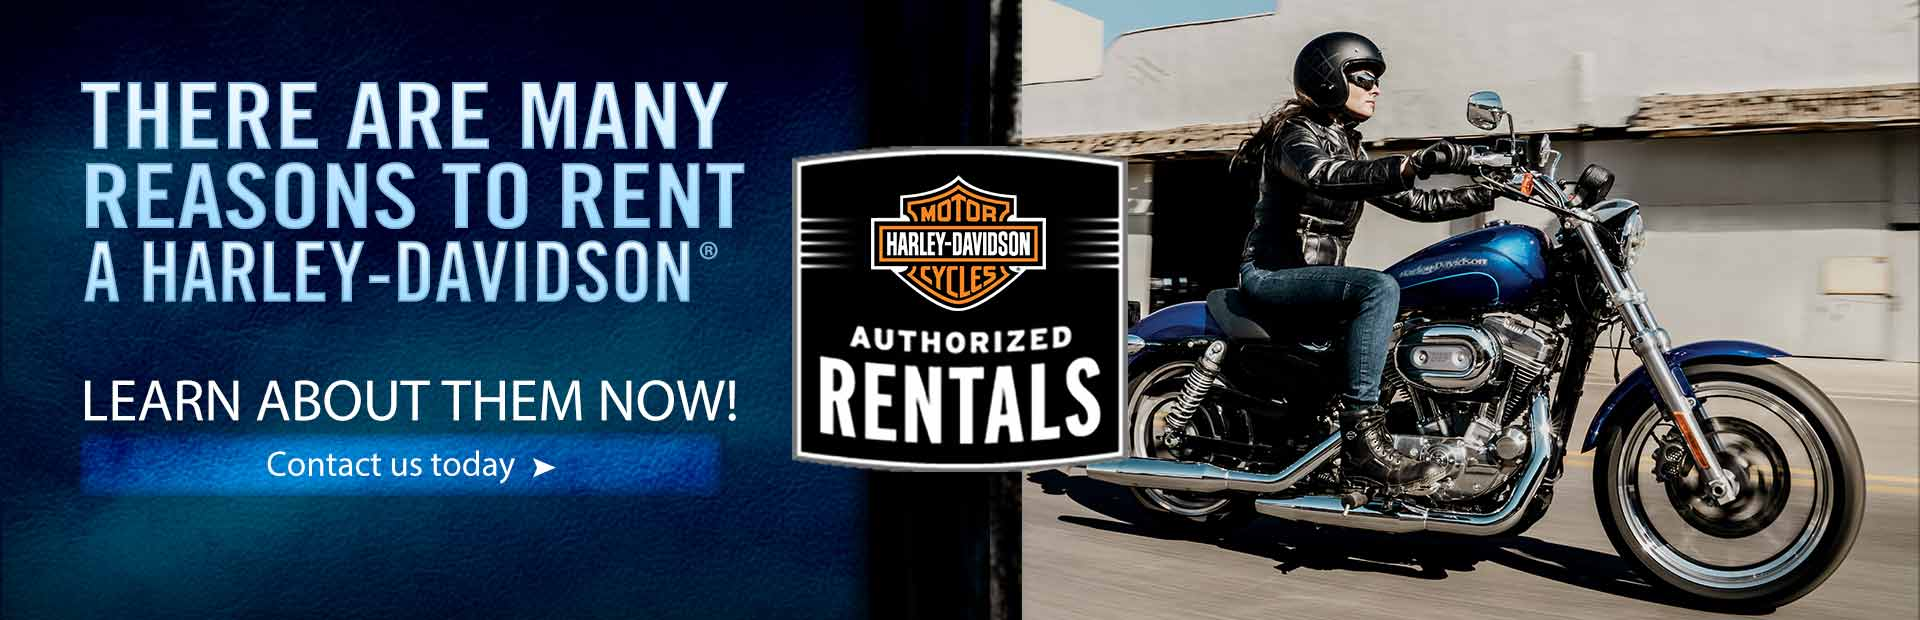 There are many reasons to rent a Harley-Davidson®. Learn about them now! Click here to contact us.